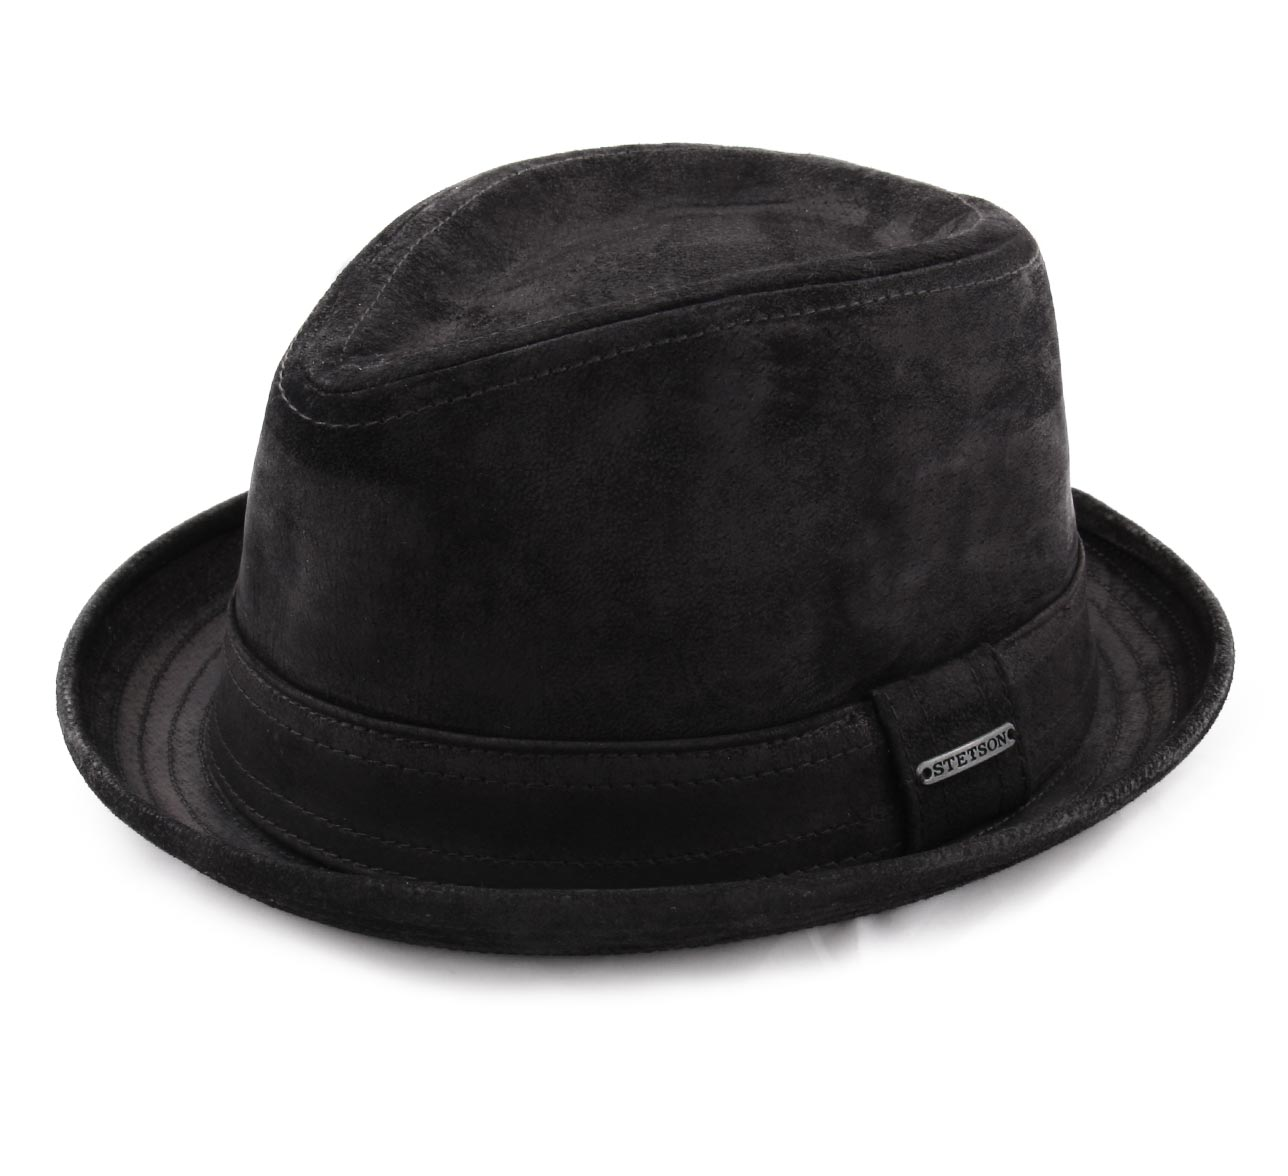 93c2ca81 Radcliff - Hats Stetson